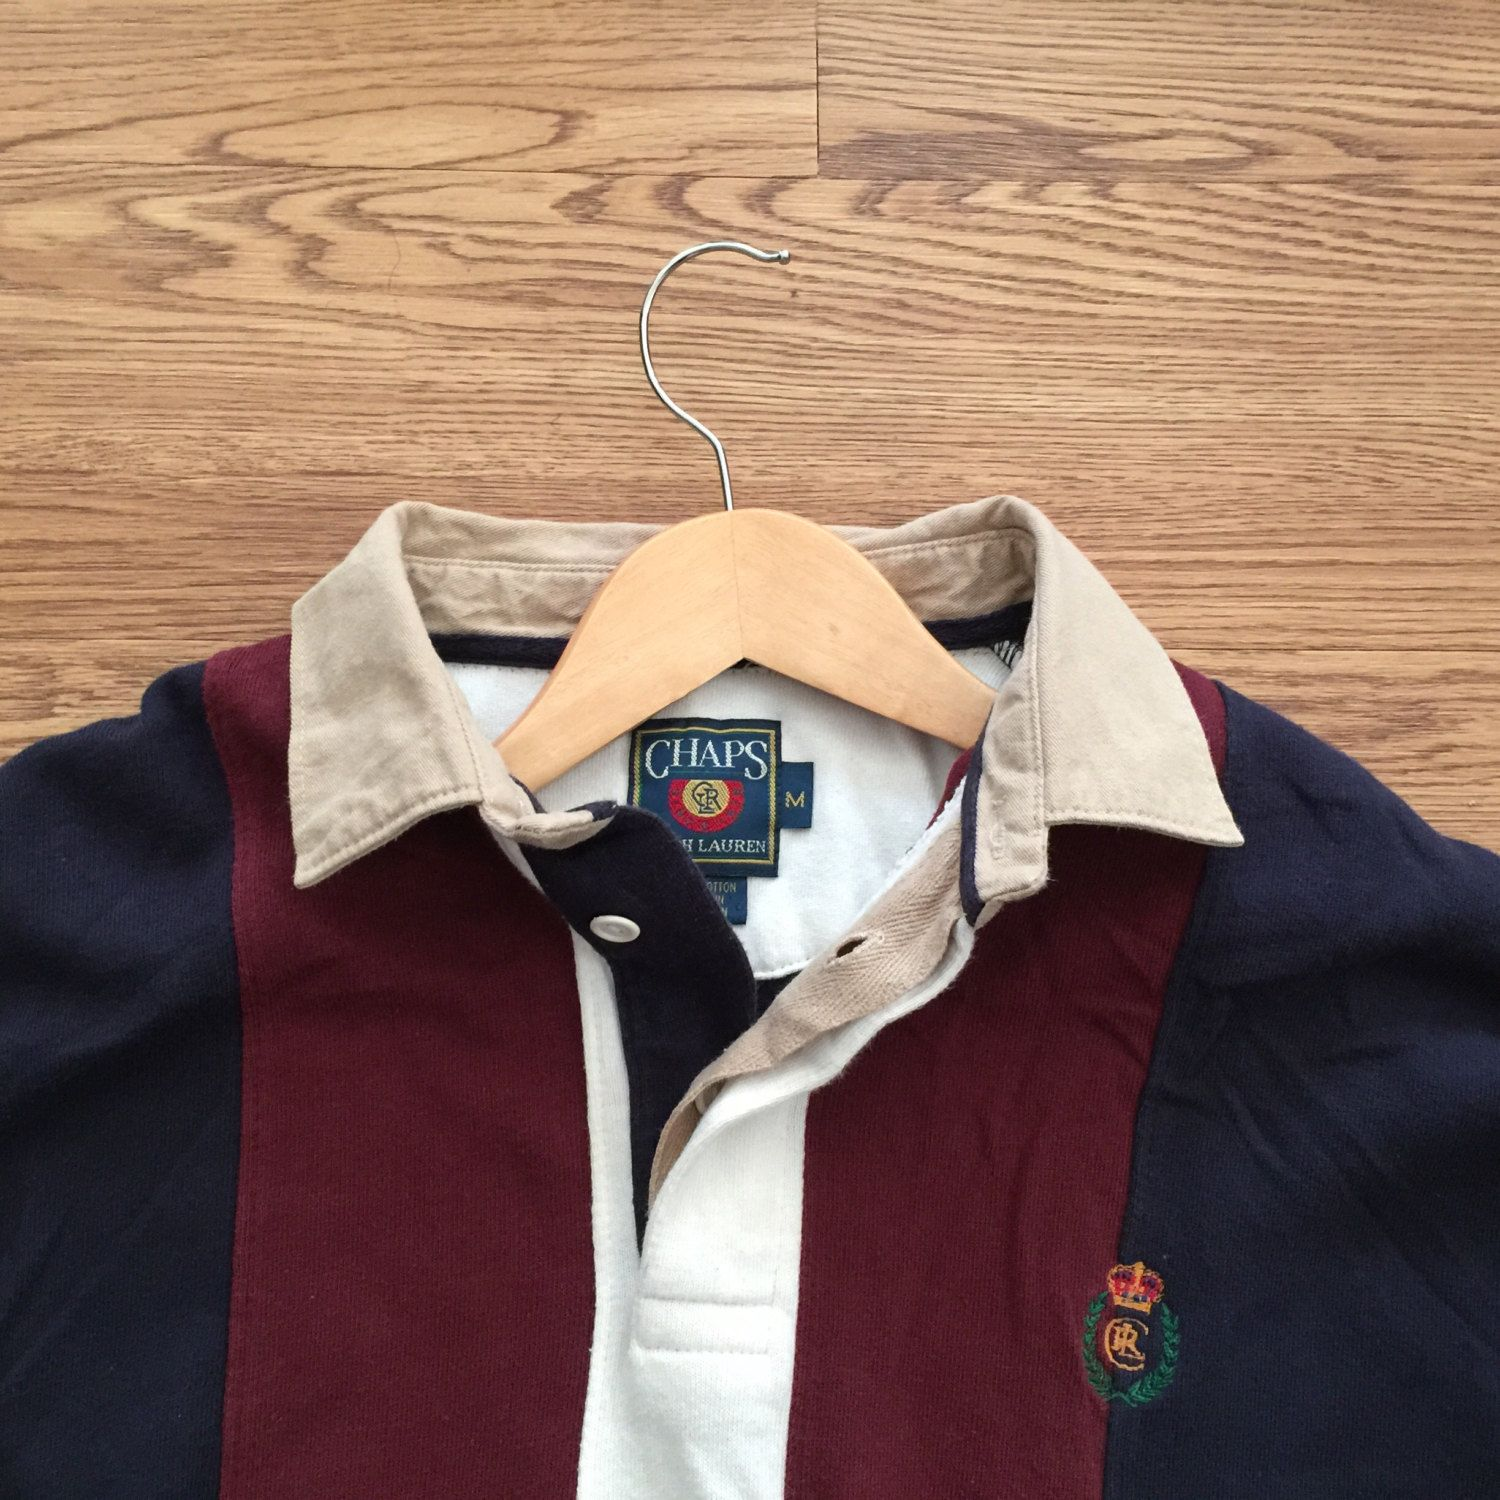 d736b708b2 Vintage Ralph Lauren x Chaps Long Sleeve Polo Shirt by VNTGvault on Etsy